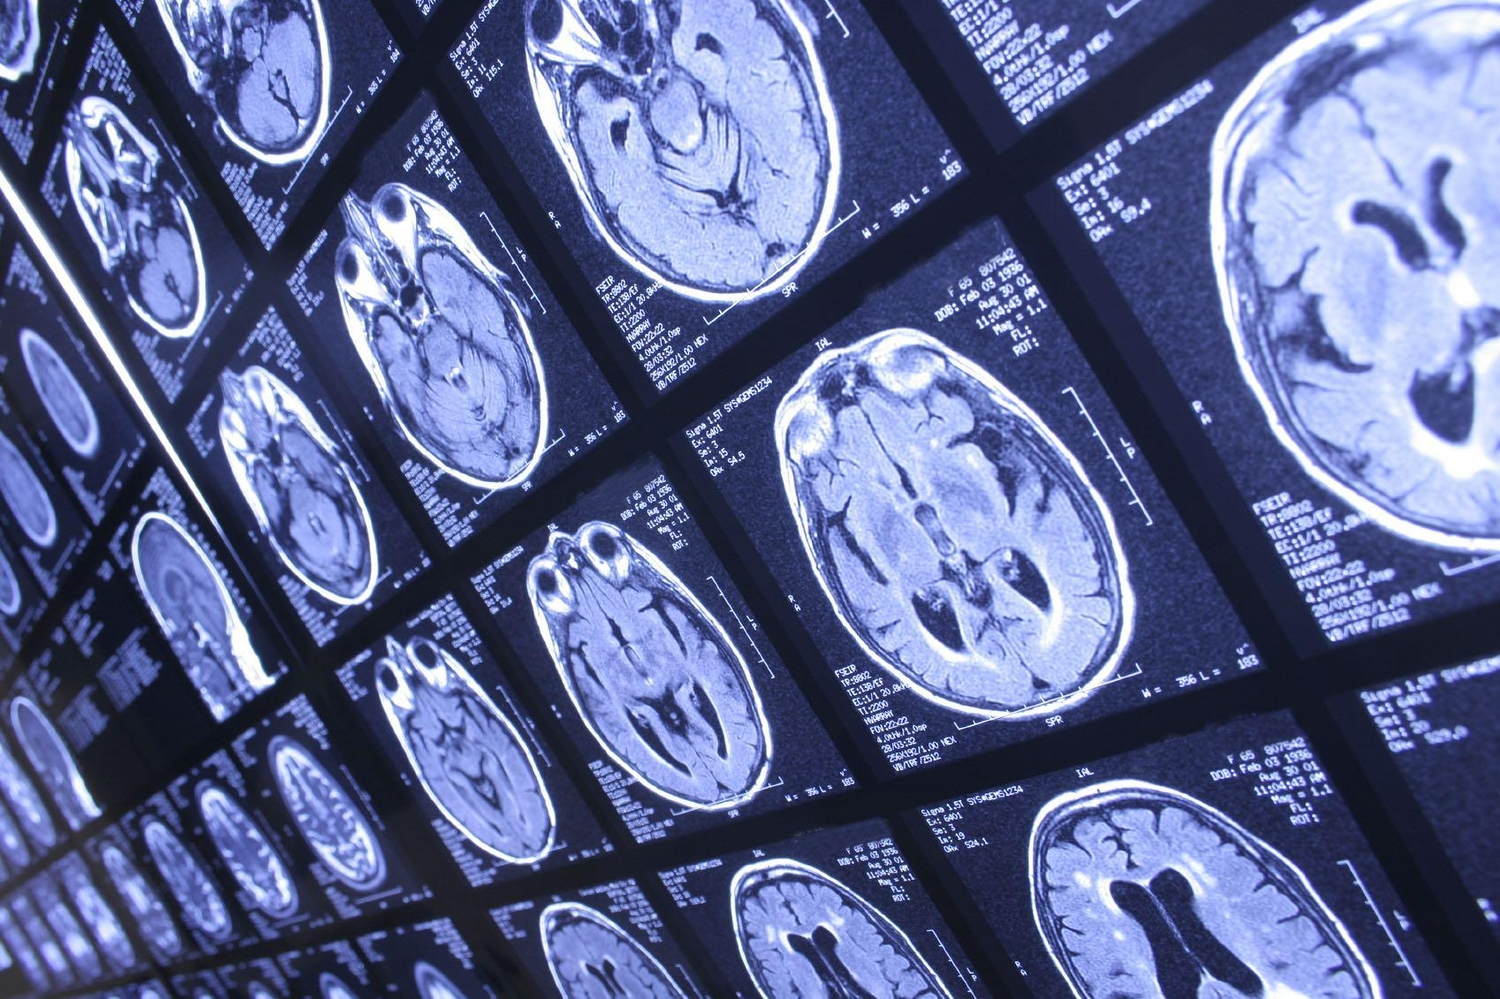 Brain activity scan in medical imaging